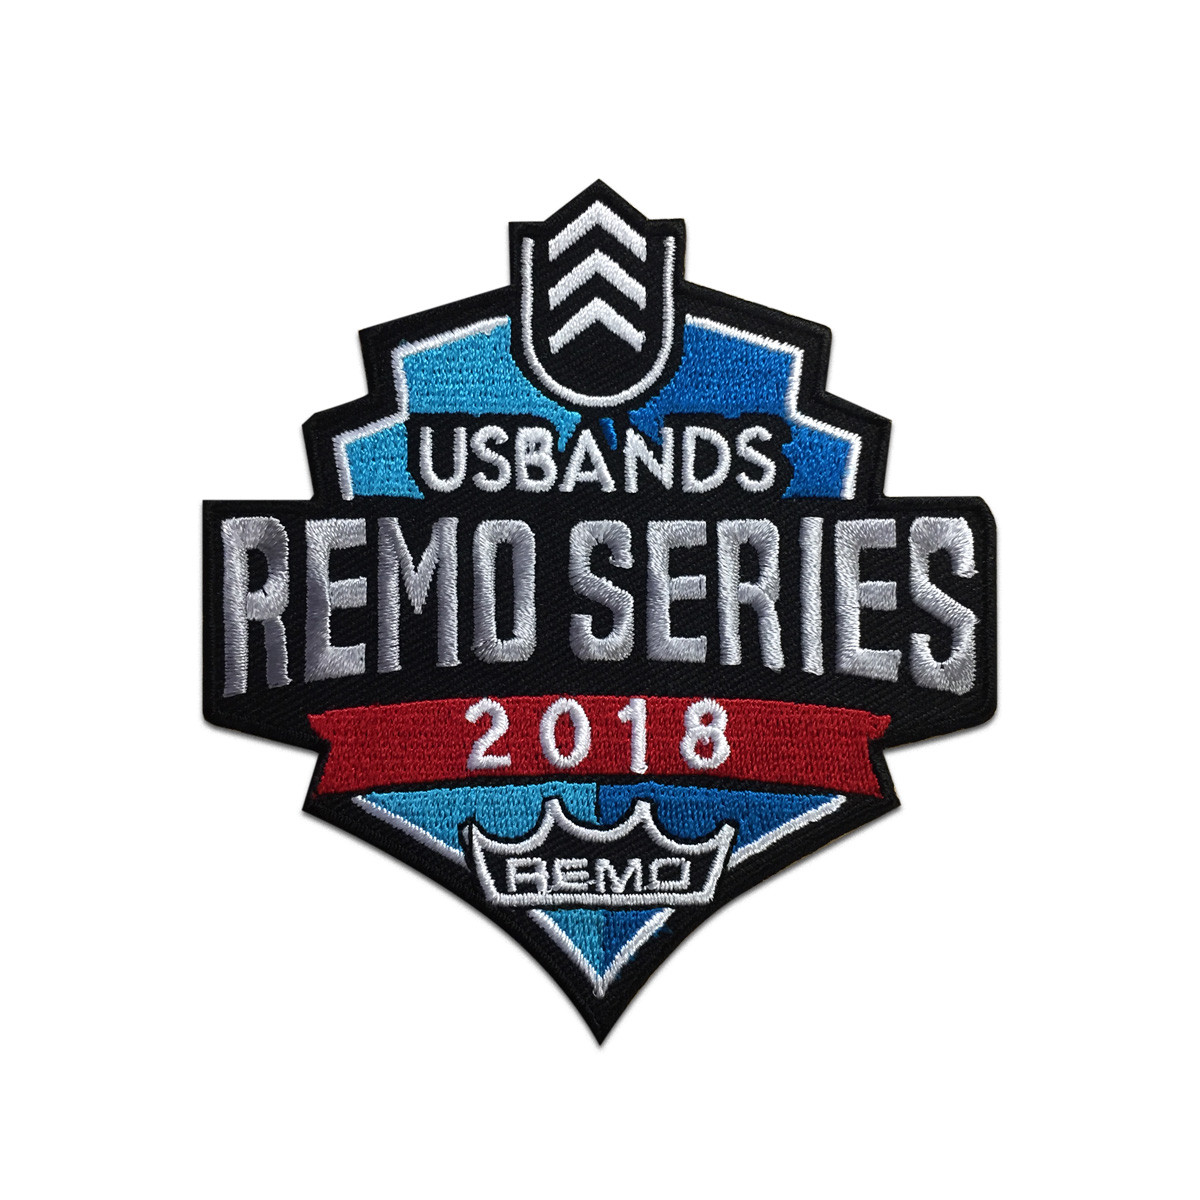 2018 USBands REMO Series Event Patch